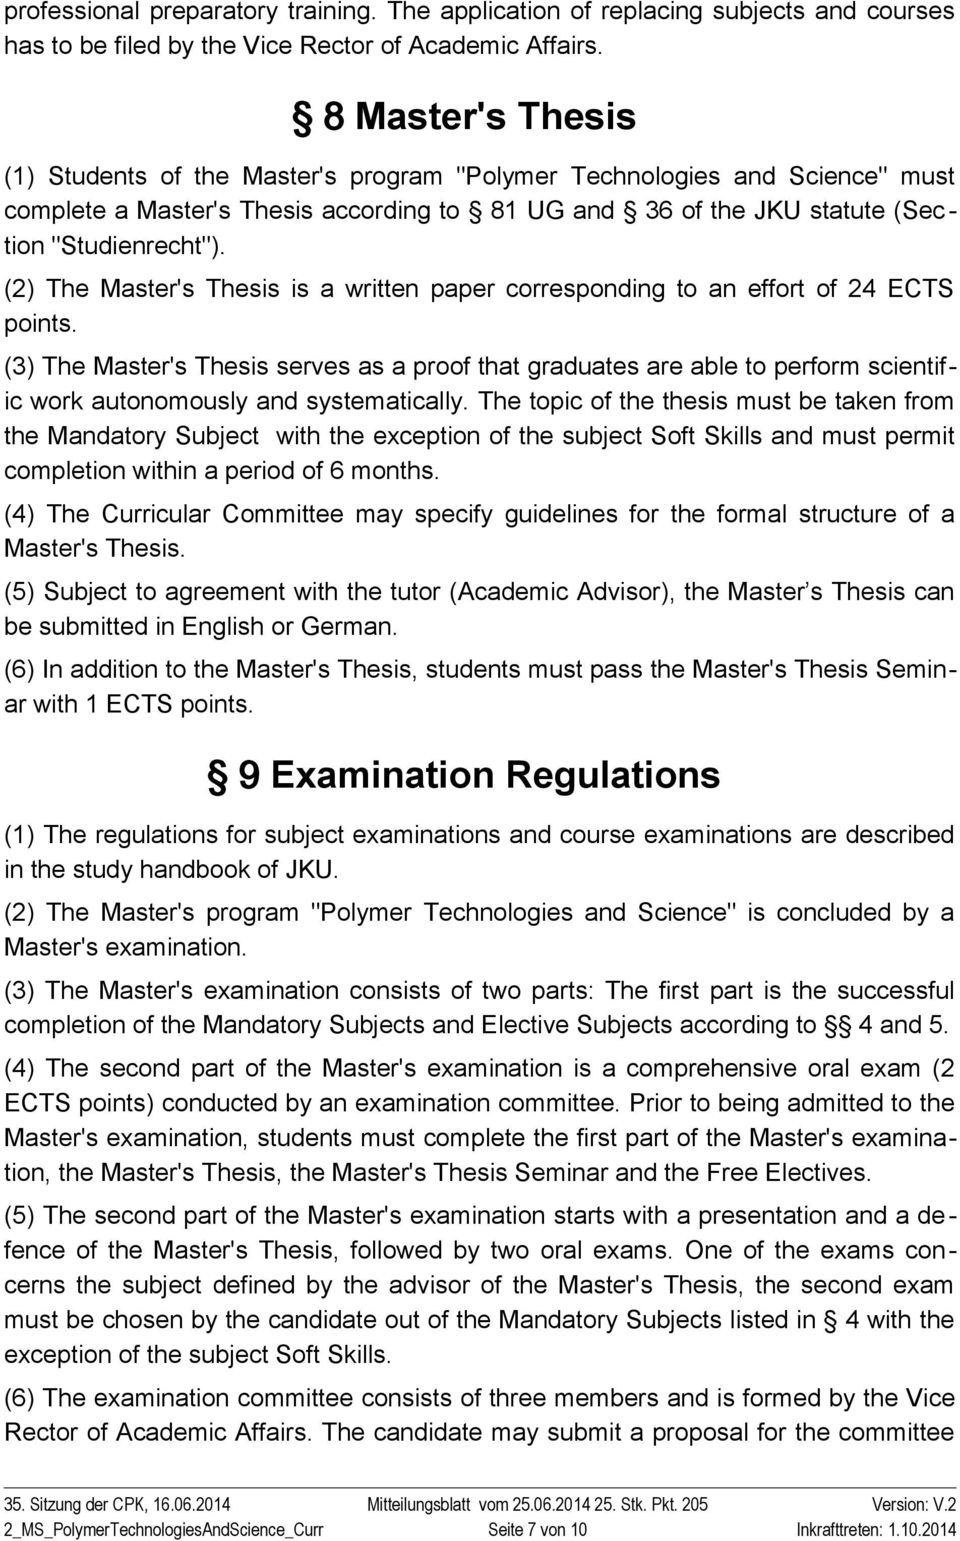 (2) The Master's Thesis is a written paper corresponding to an effort of 24 ECTS points.